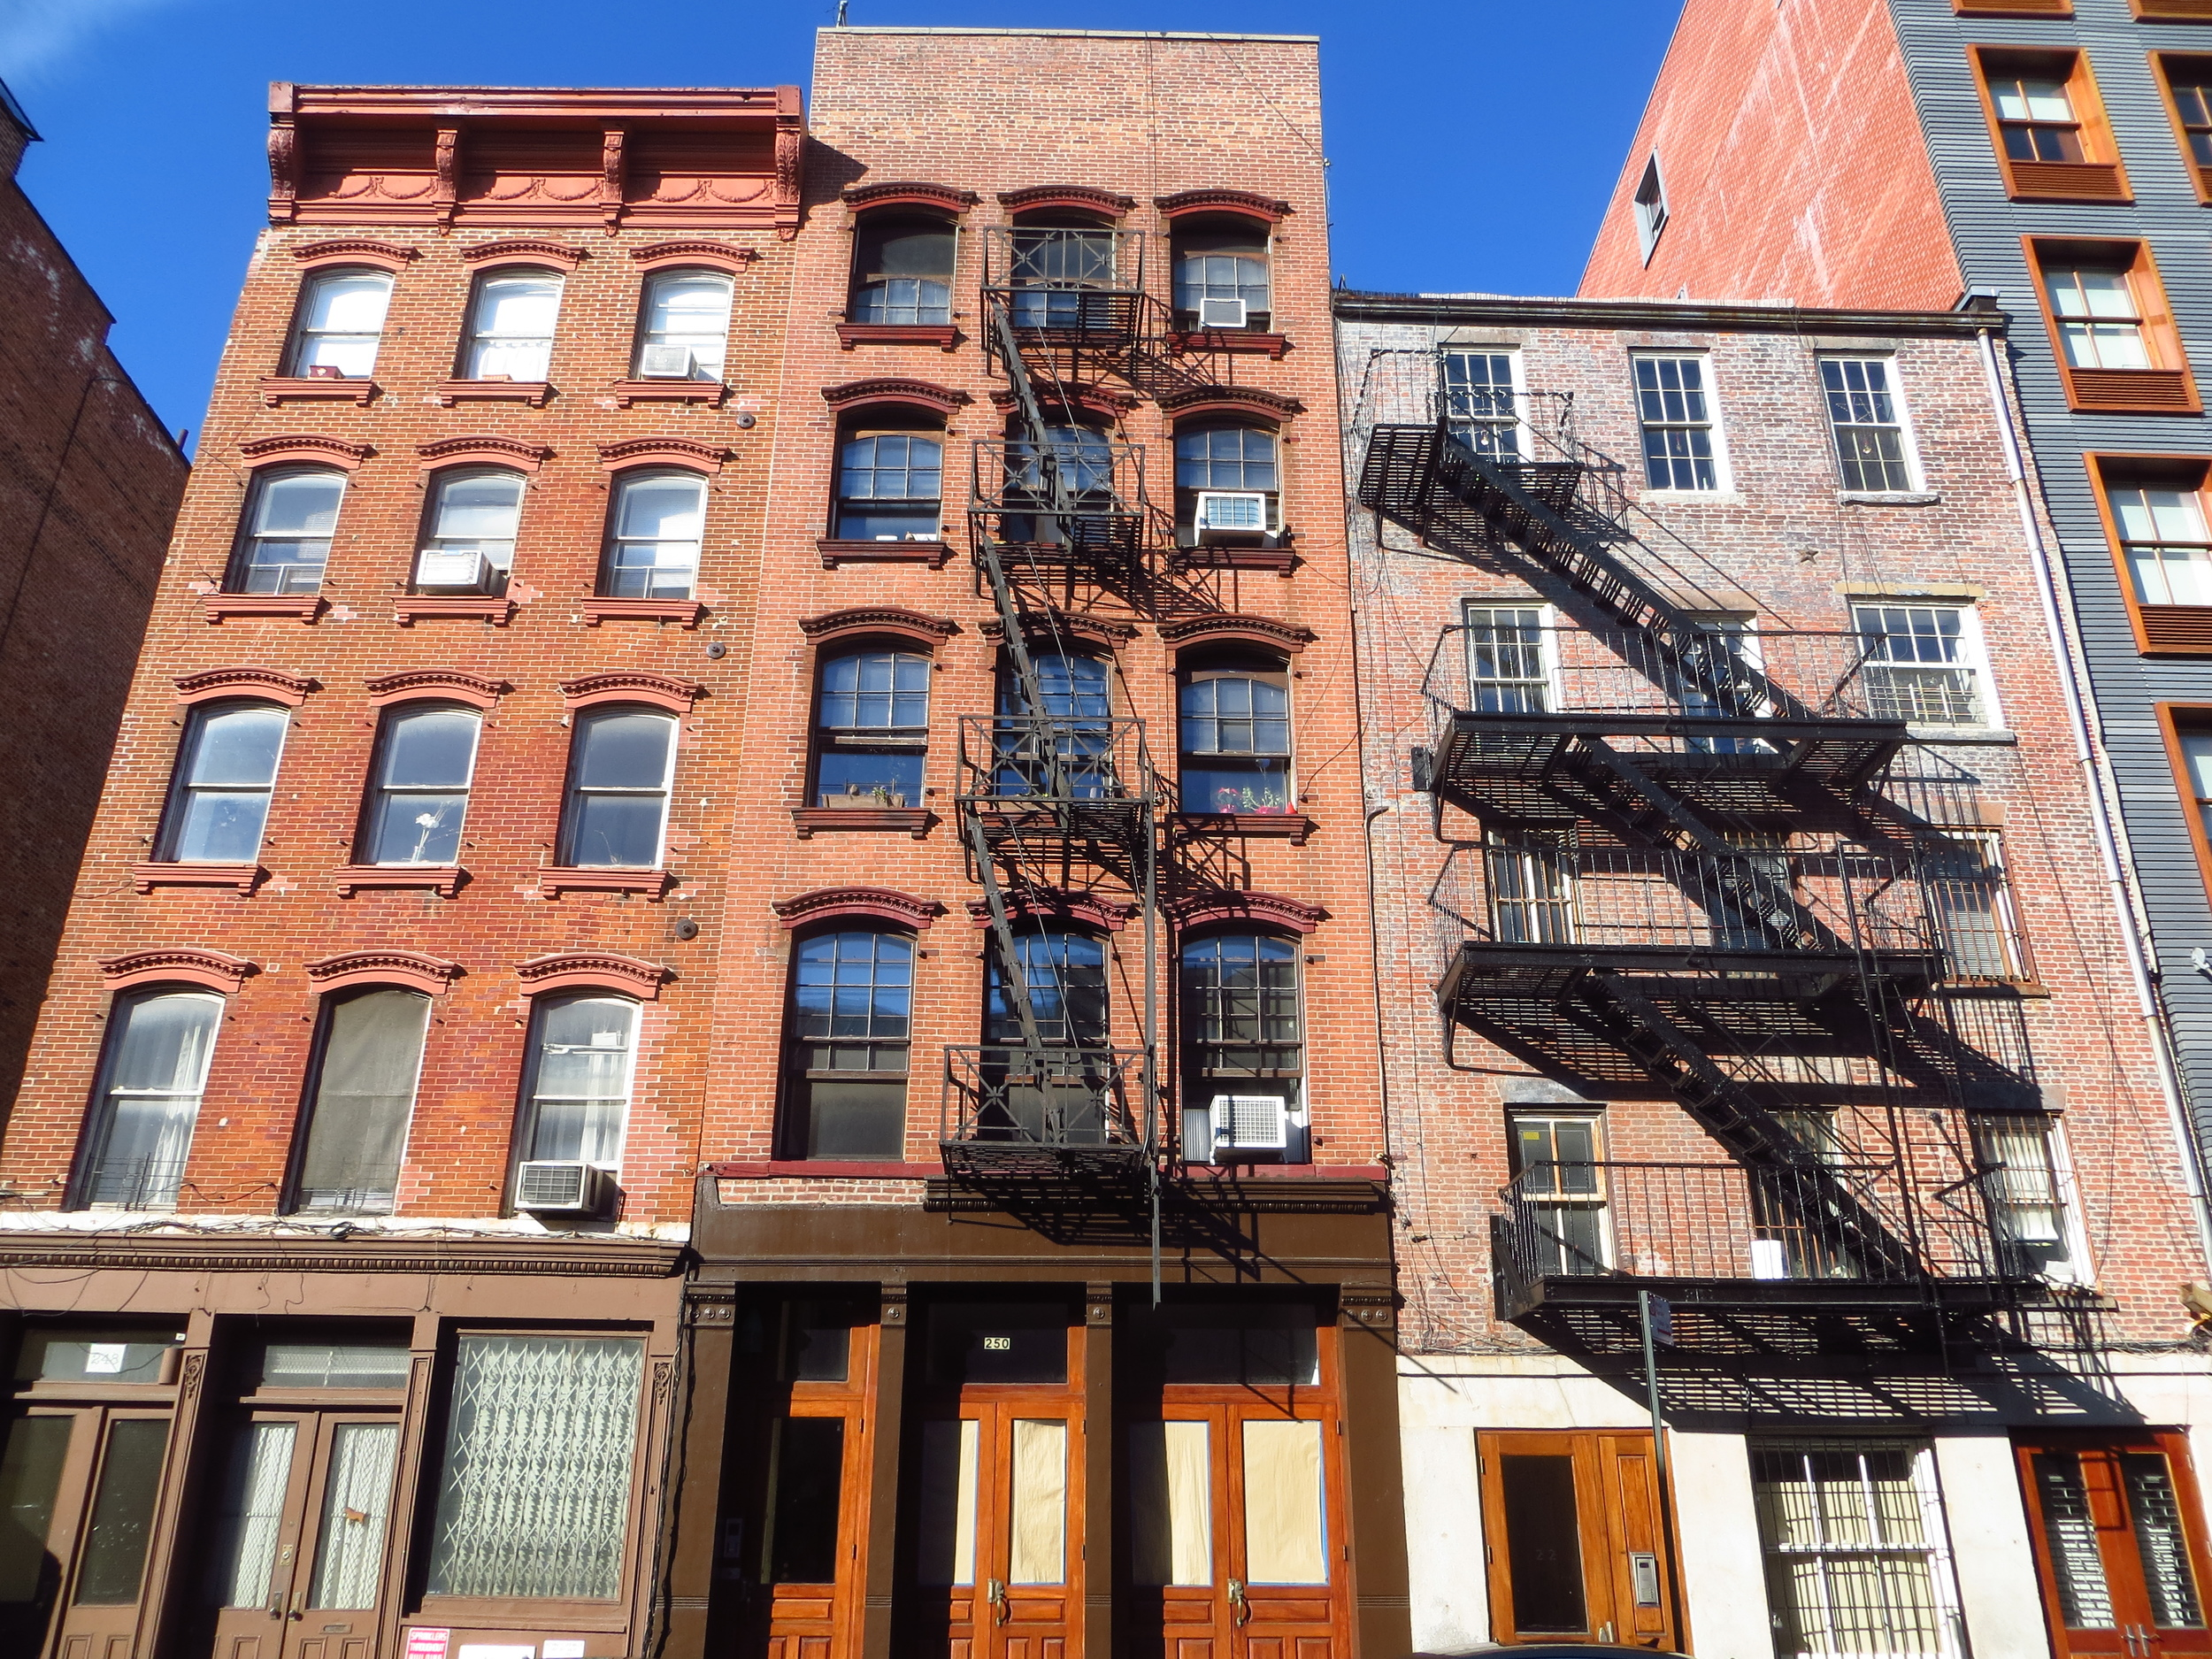 More Old South Street Seaport Buildings